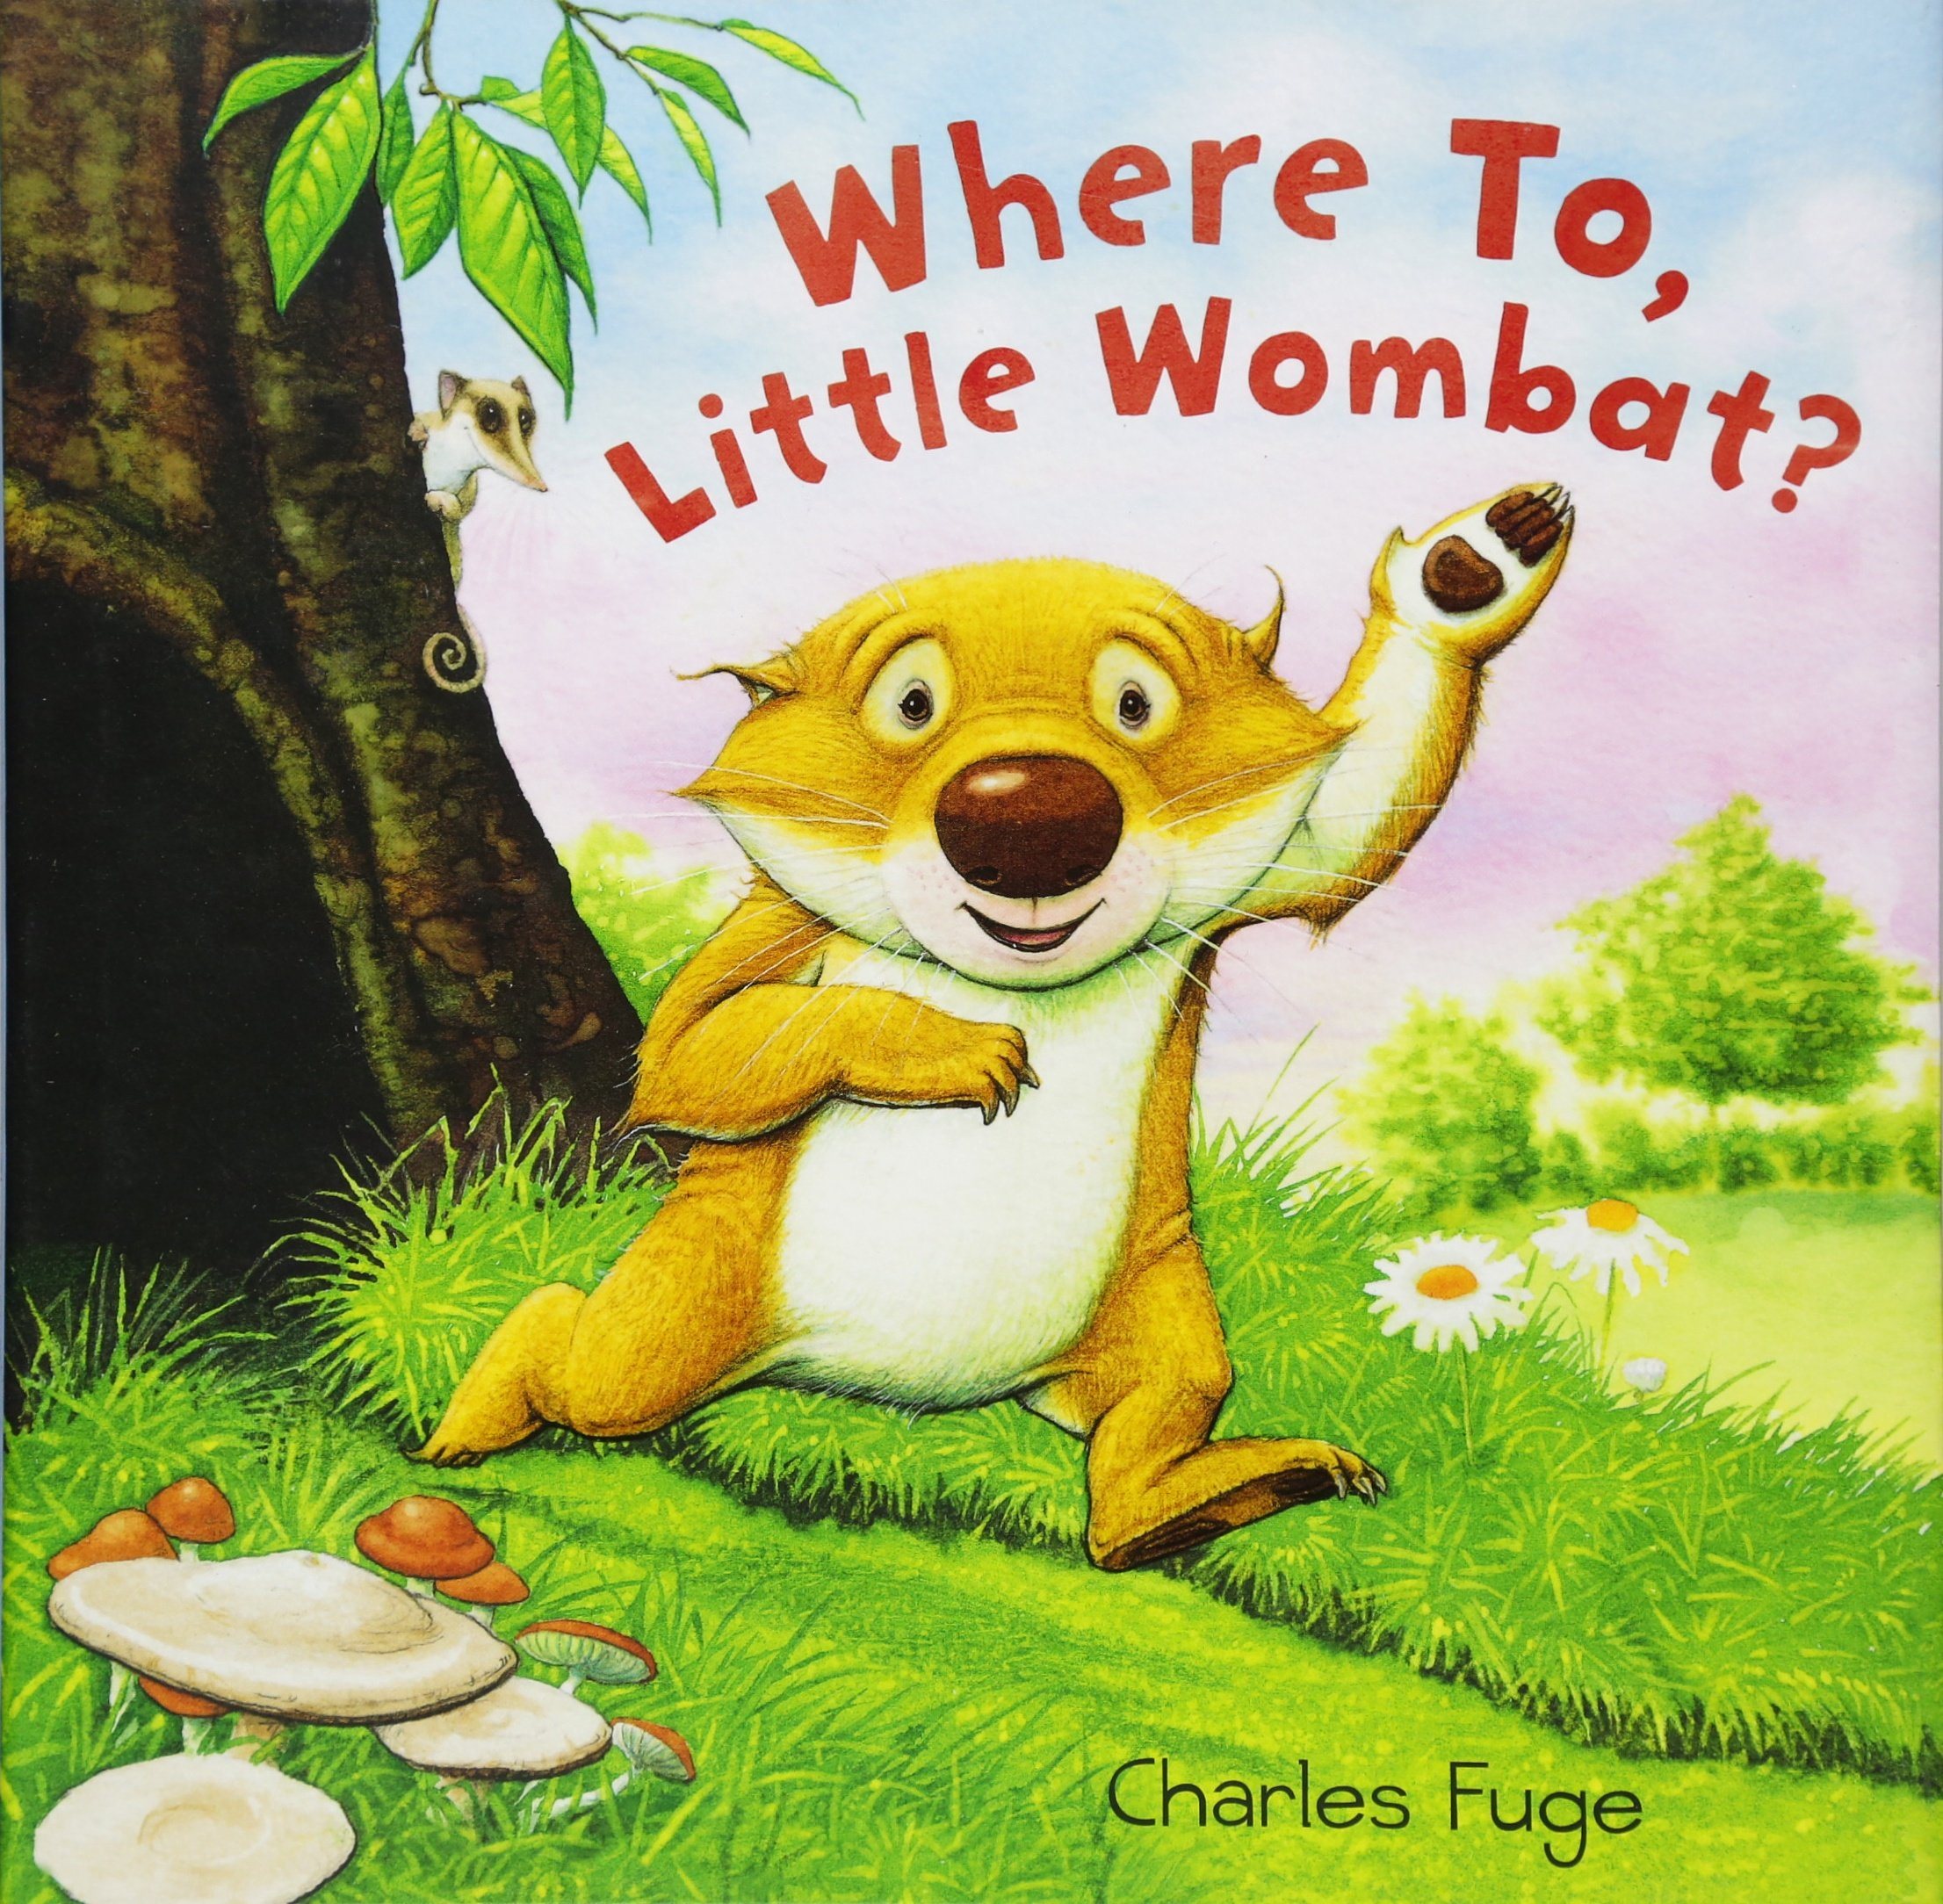 Where To, Little Wombat? pdf